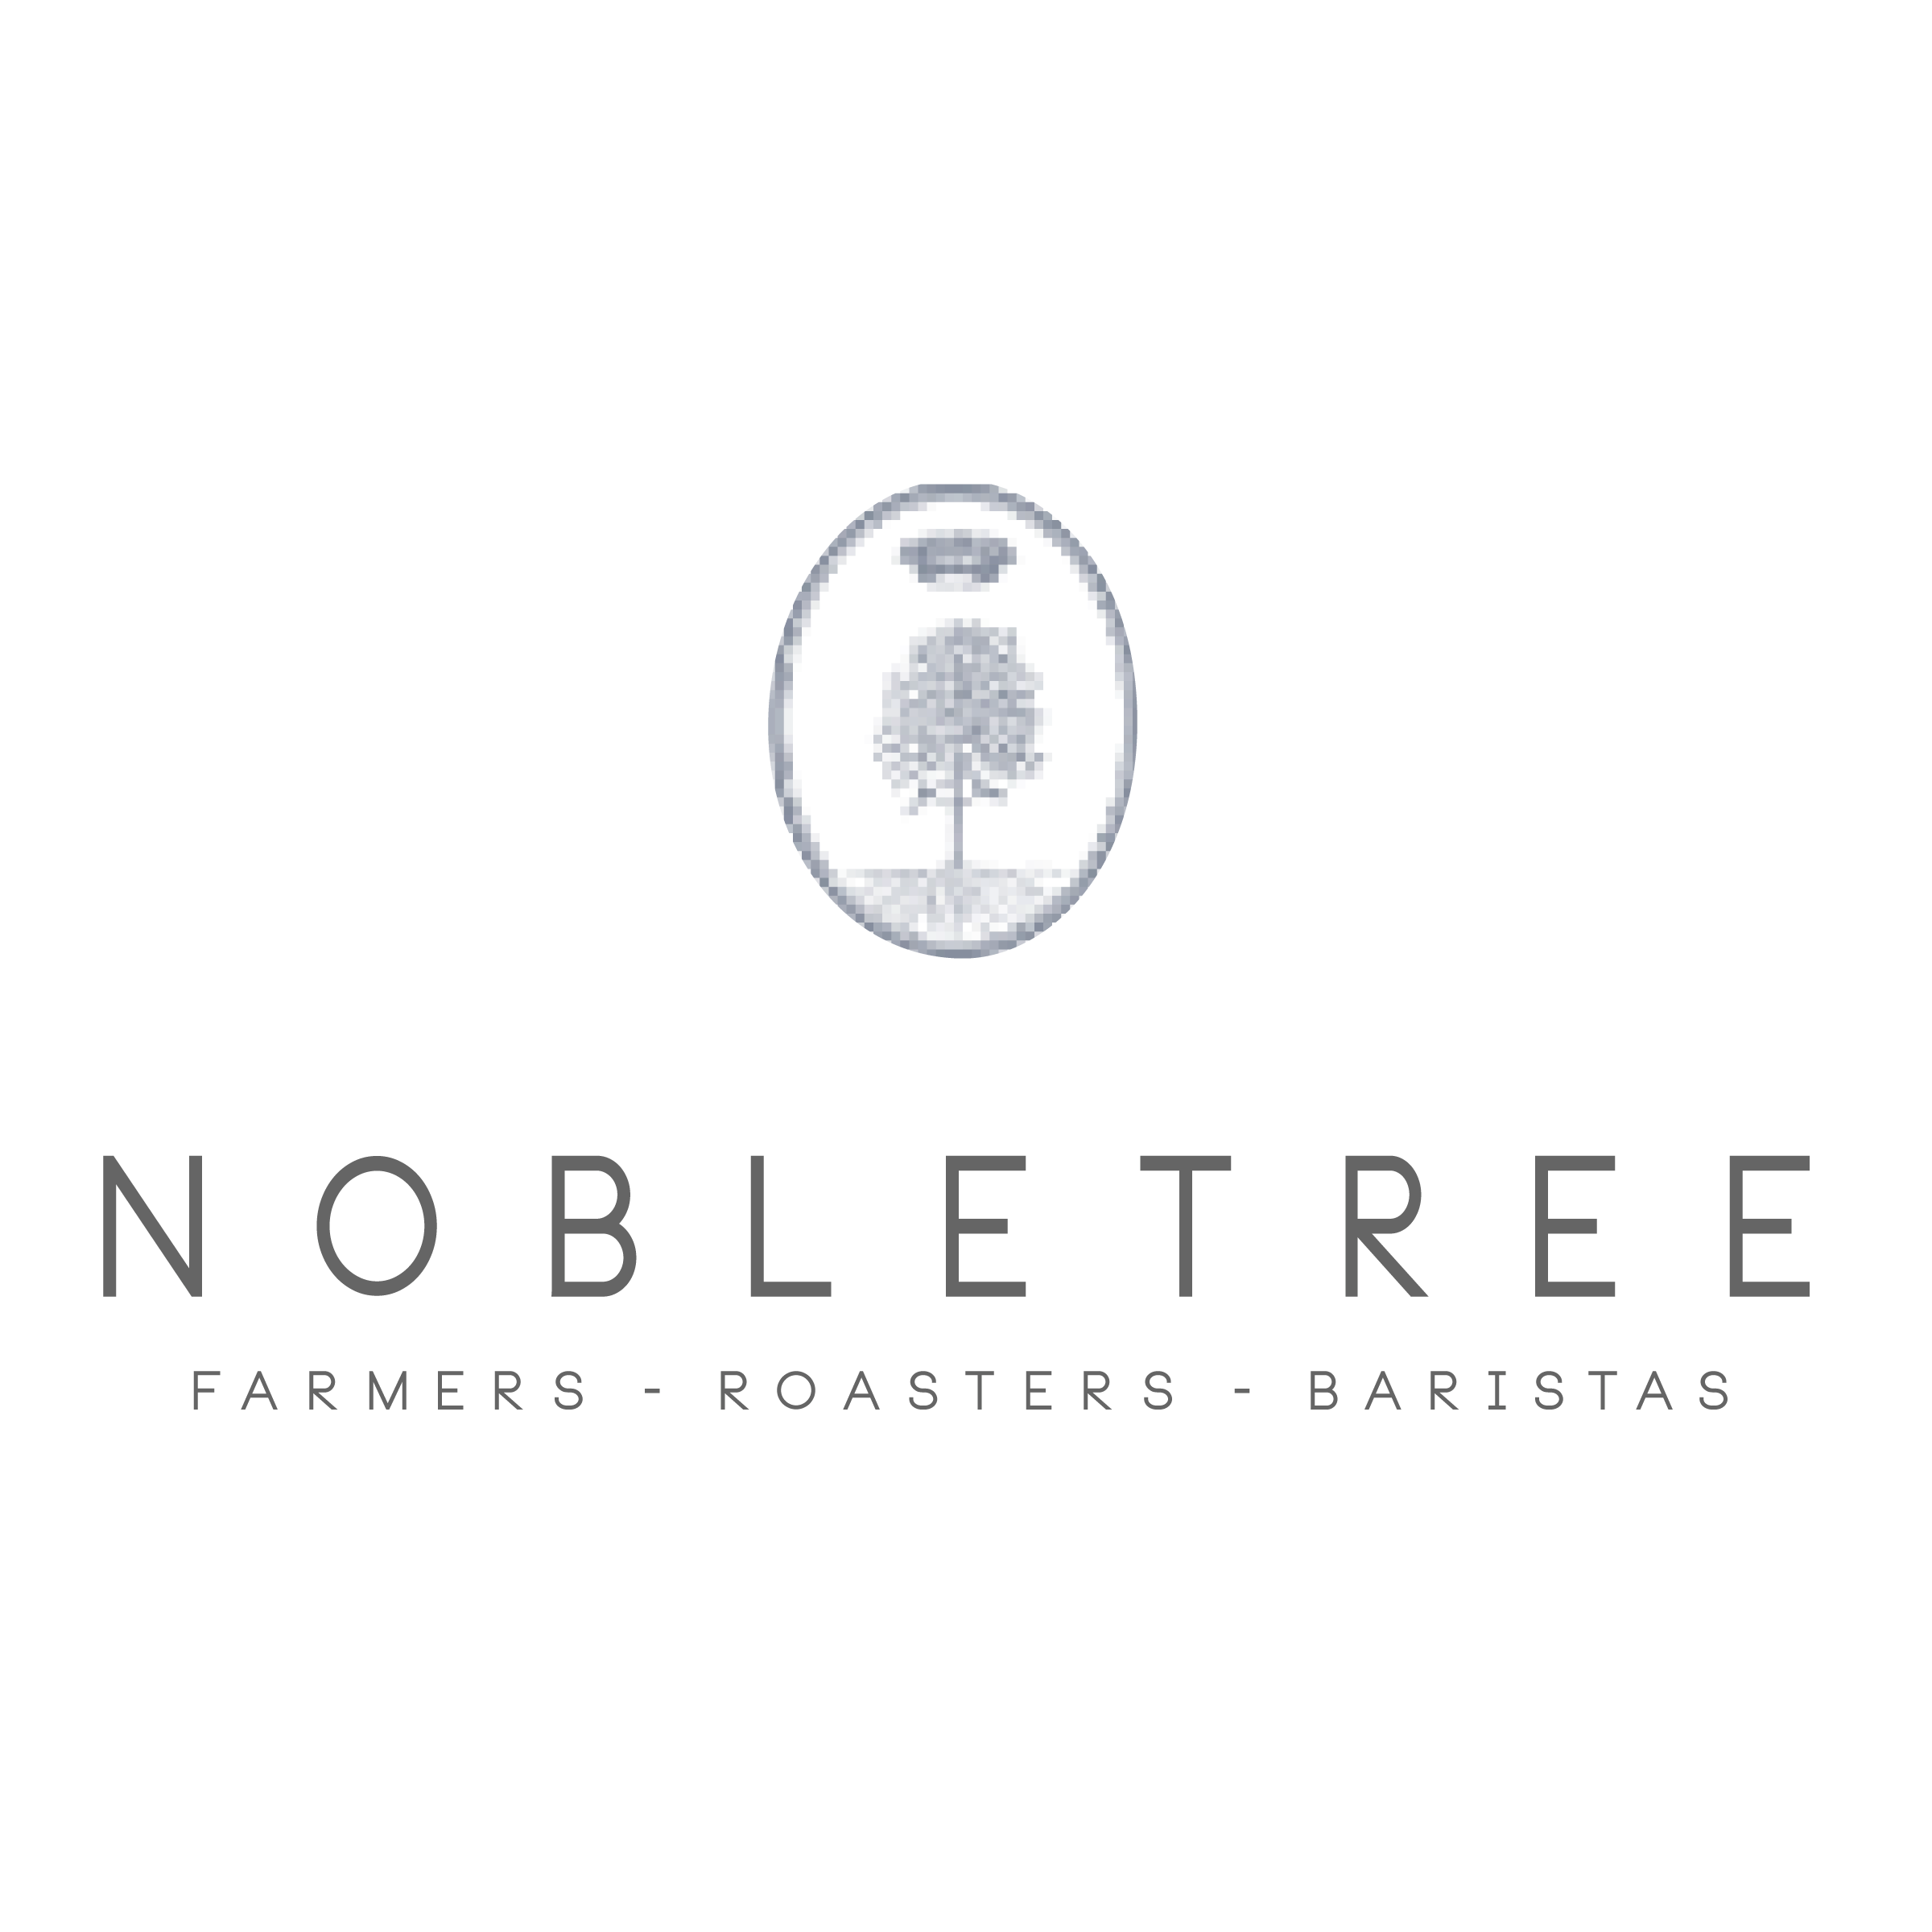 nobletree.png